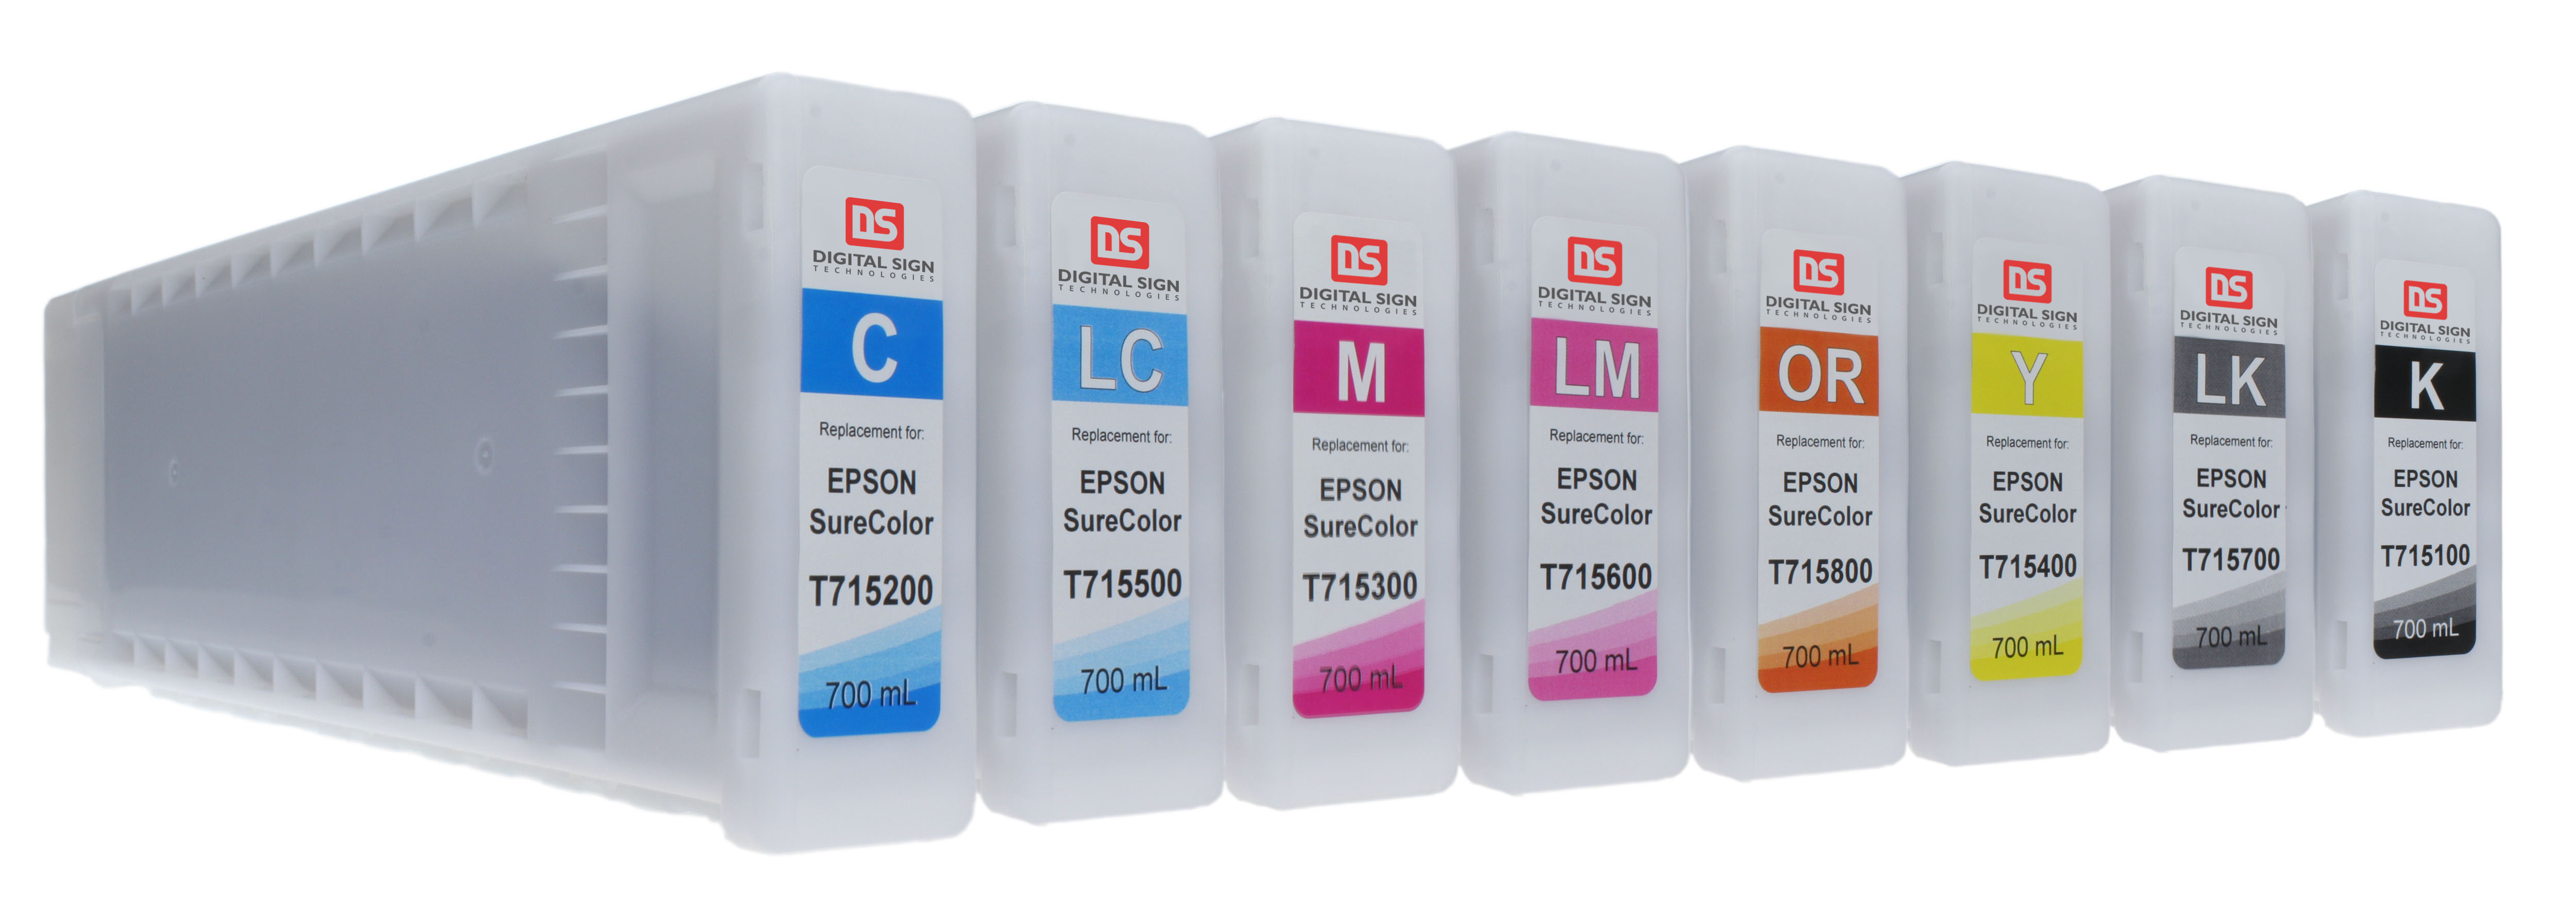 Epson UltraChrome GSX ink cartridges by DST